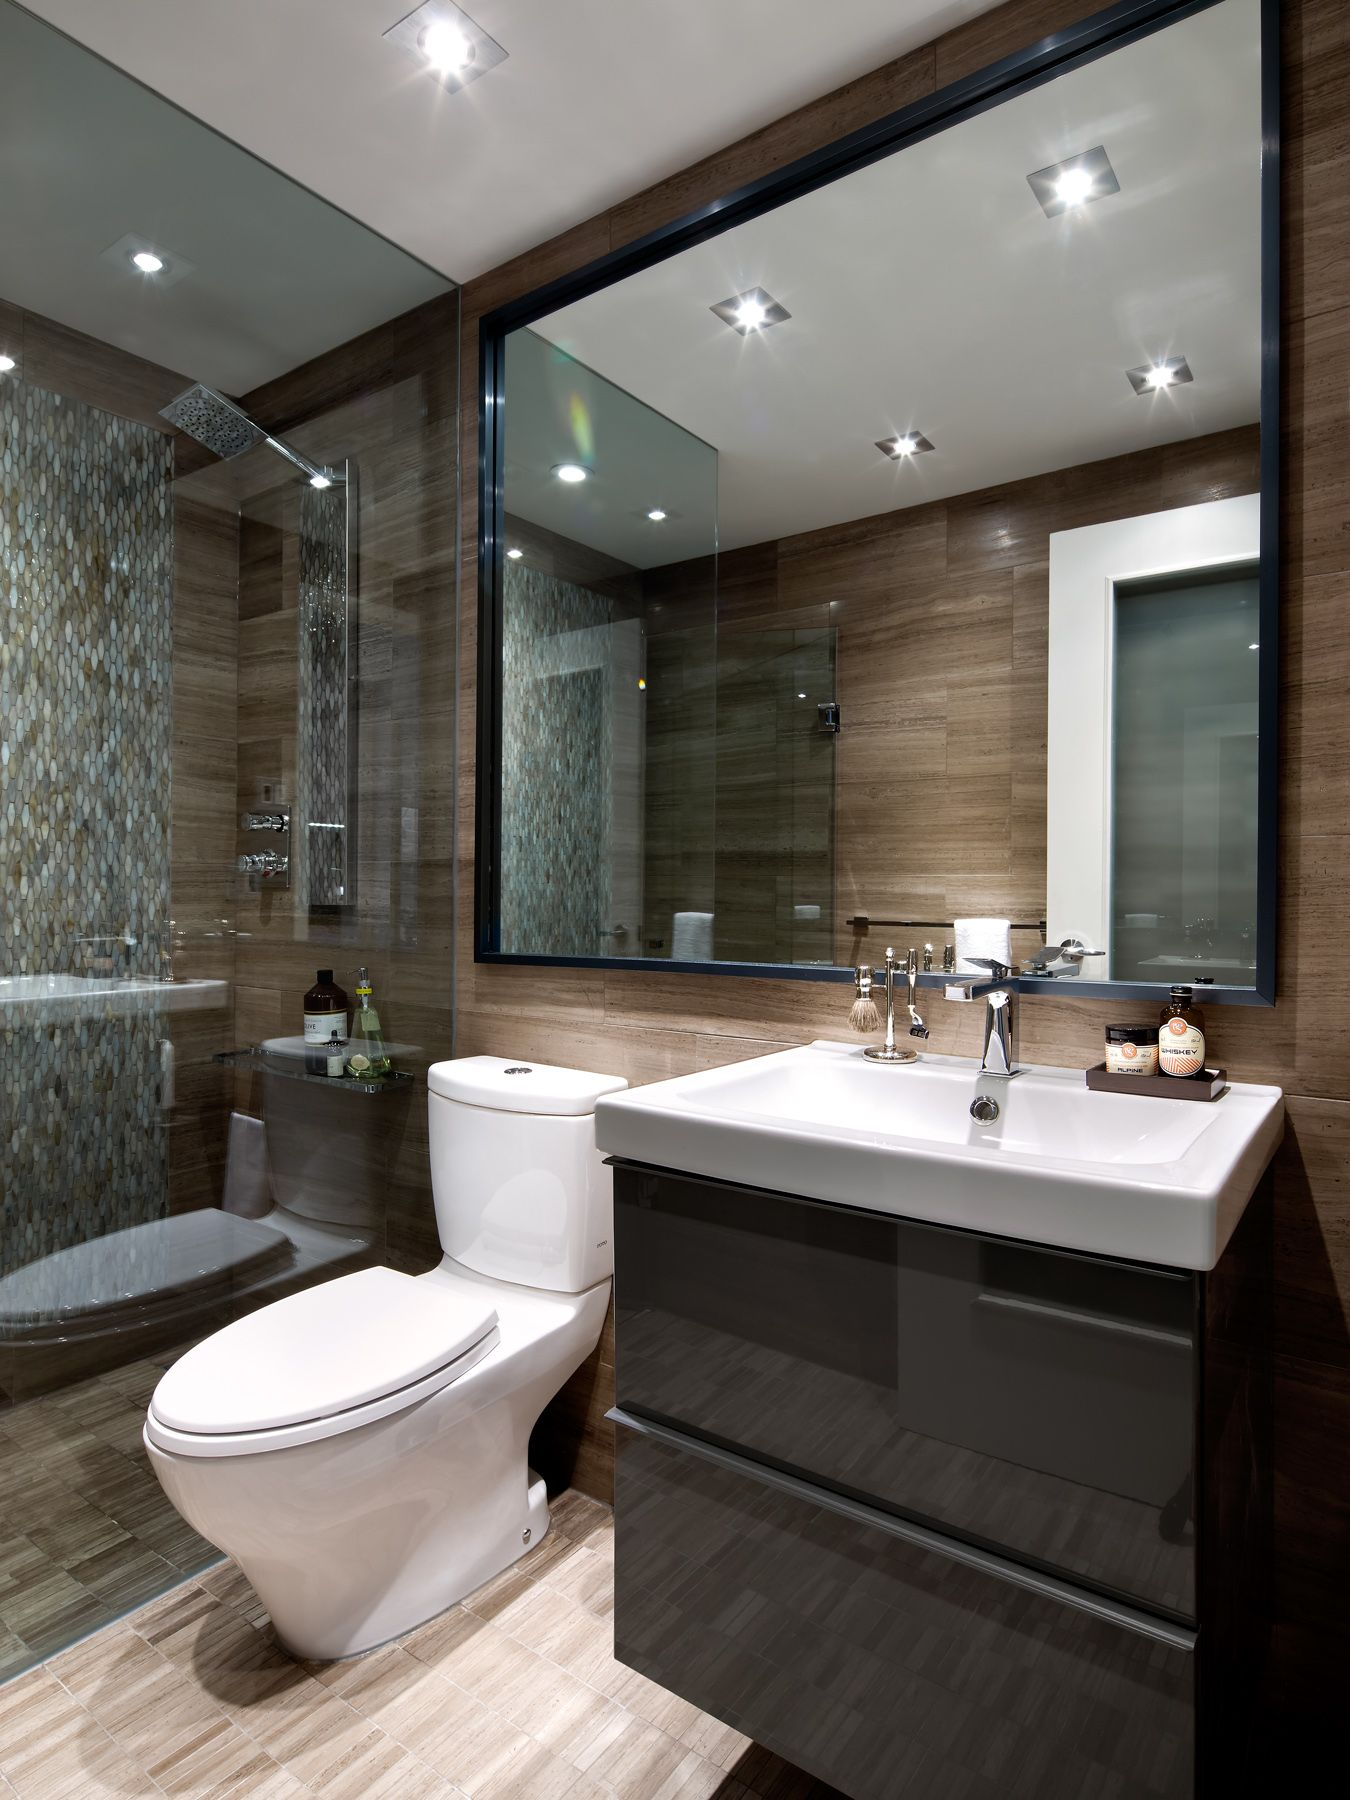 Florida Condo Bathroom 10 Best Ideas Floridacondo Luxurycondo Modern Small Design